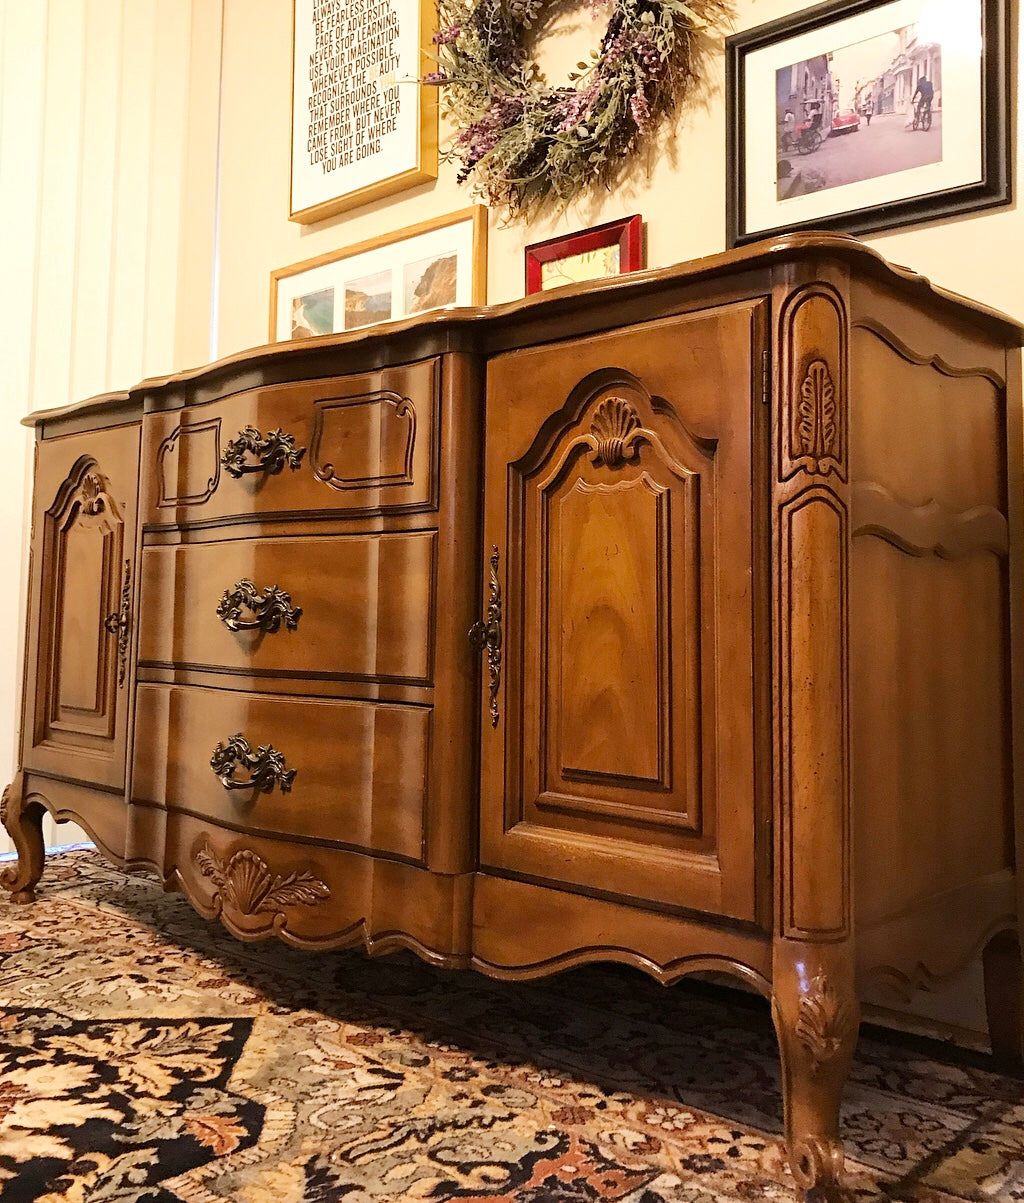 (SOLD) Gorgeous 1950s French Country Buffet/Media/Entryway/Dresser/Console with Beautiful Details and Hardware. This is a Perfect French Country BEAUTY!!!